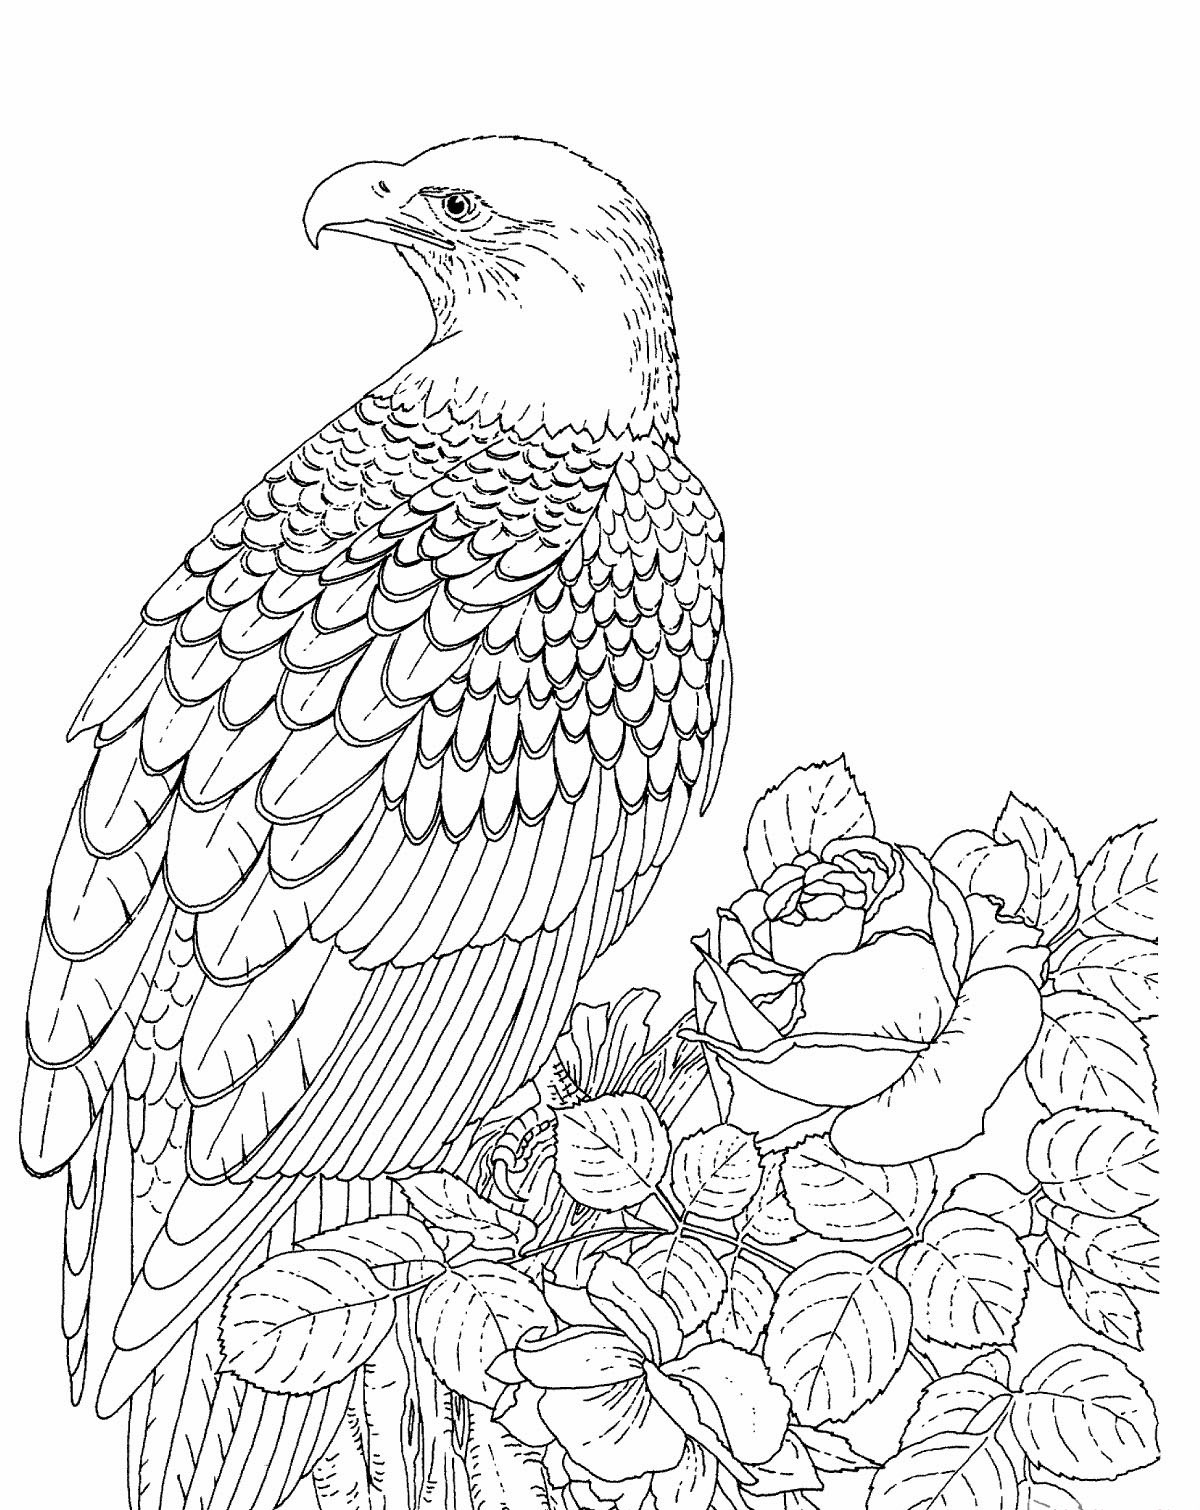 coloring pages of eagles - photo#5